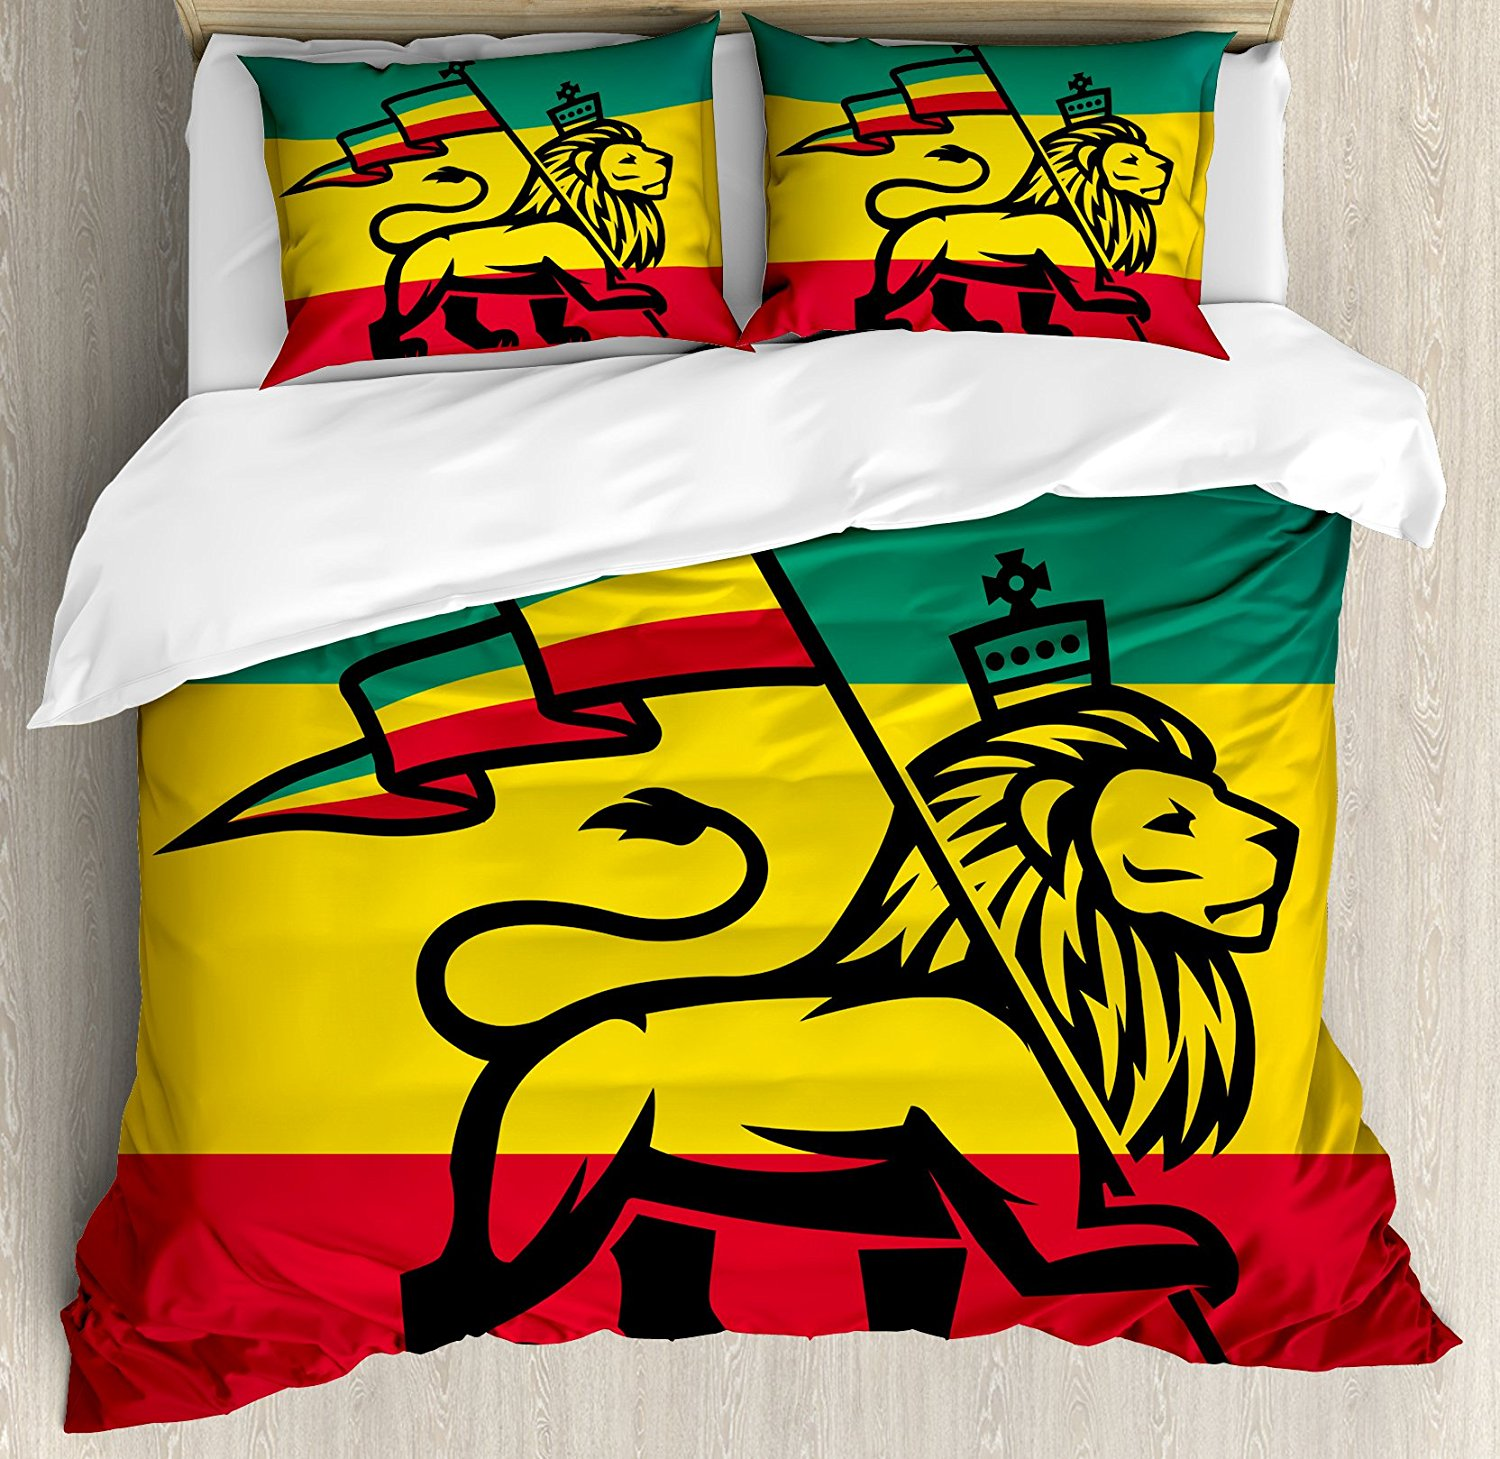 Rasta Duvet Cover Set Judah Lion With A Rastafari Flag King Jungle Reggae Theme Art Print Decorative 4 Piece Bedding Set